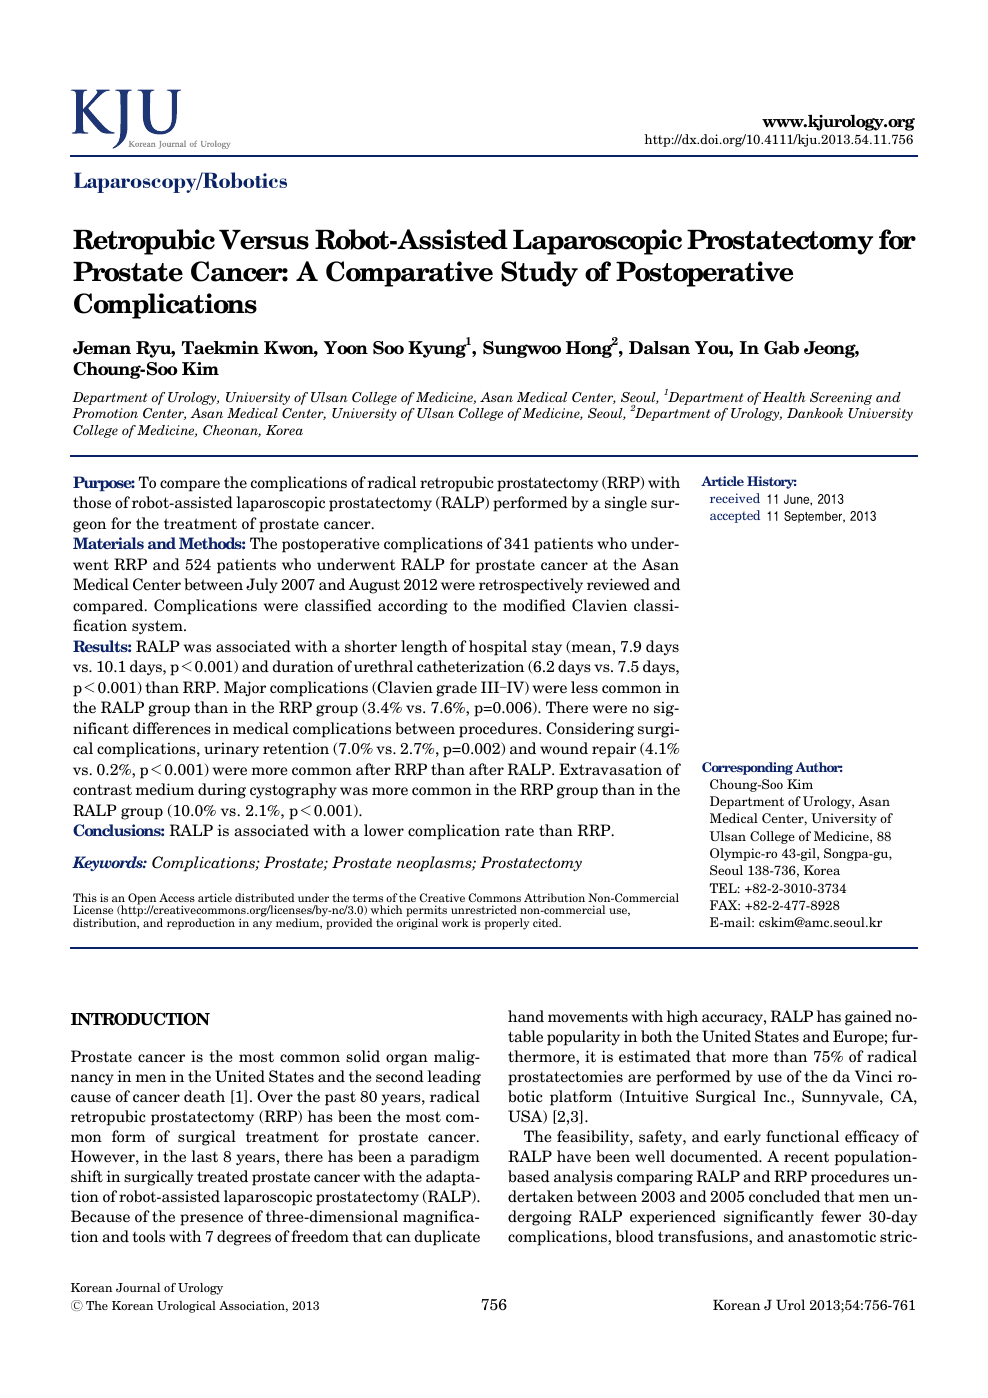 Retropubic Versus Robot Assisted Laparoscopic Prostatectomy For